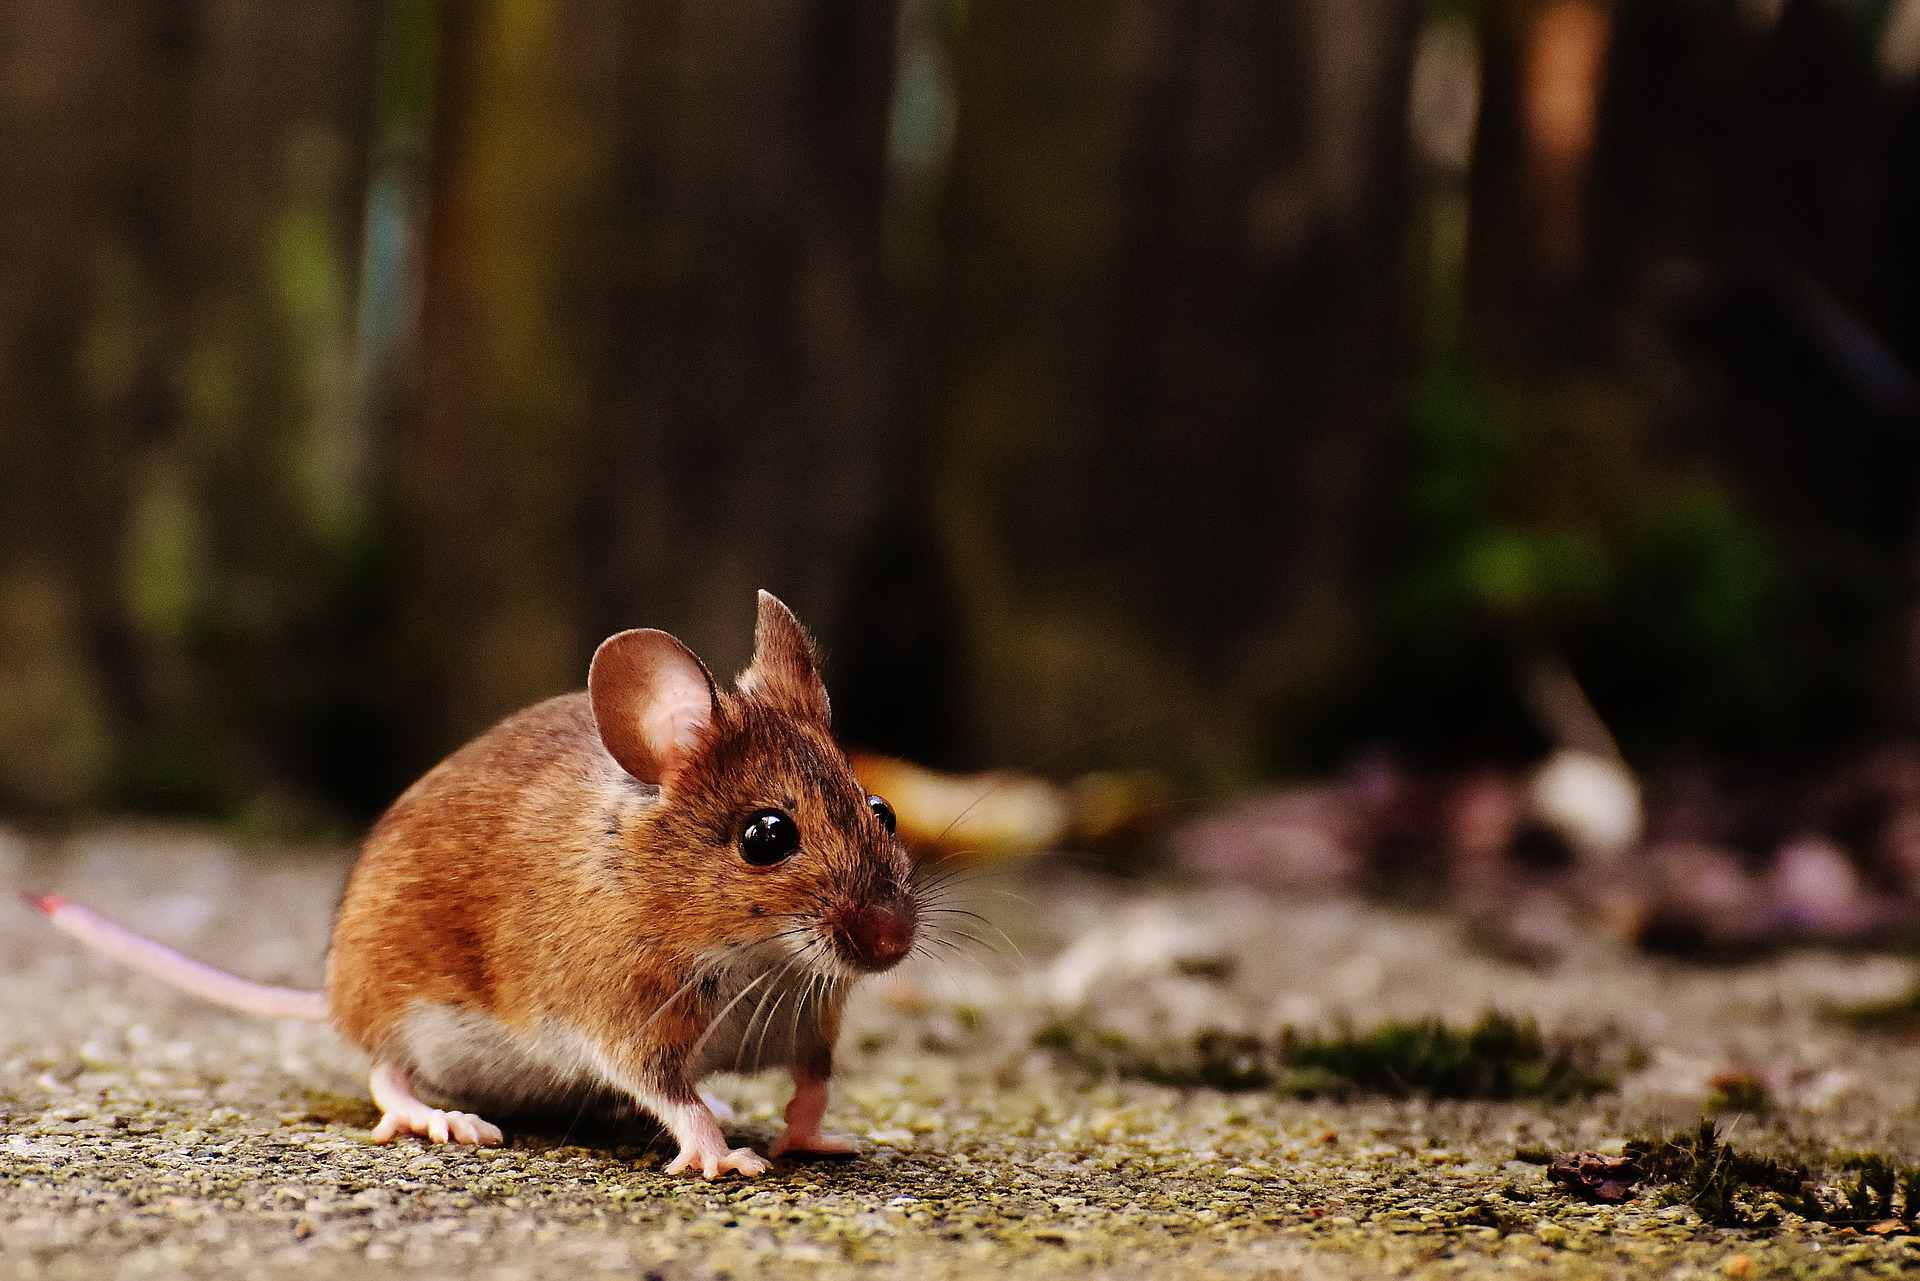 Mouse sitting on the ground.